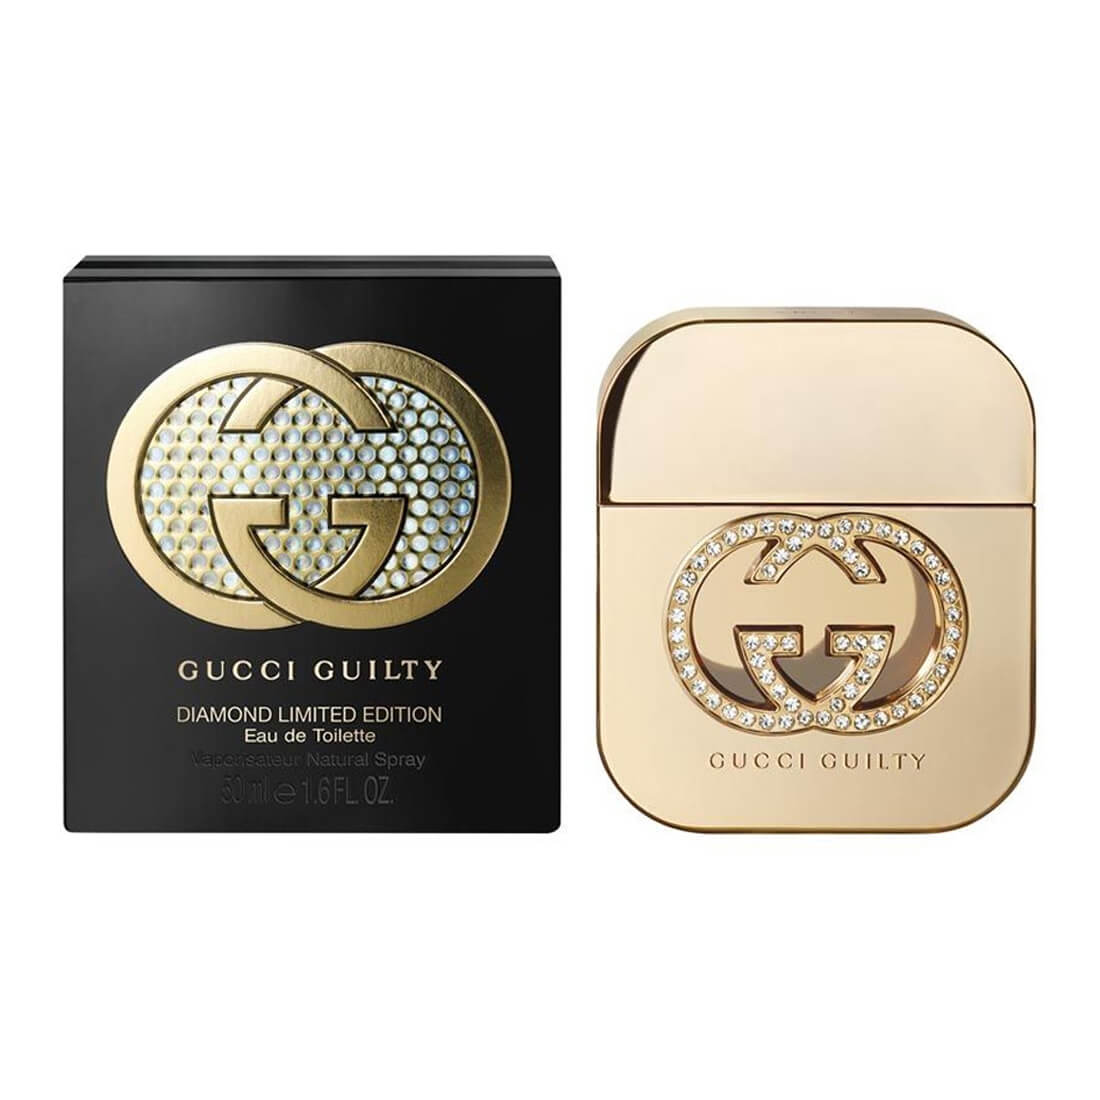 Gucci Guilty Diamond Limited Edition Eau De Toilette 50ml